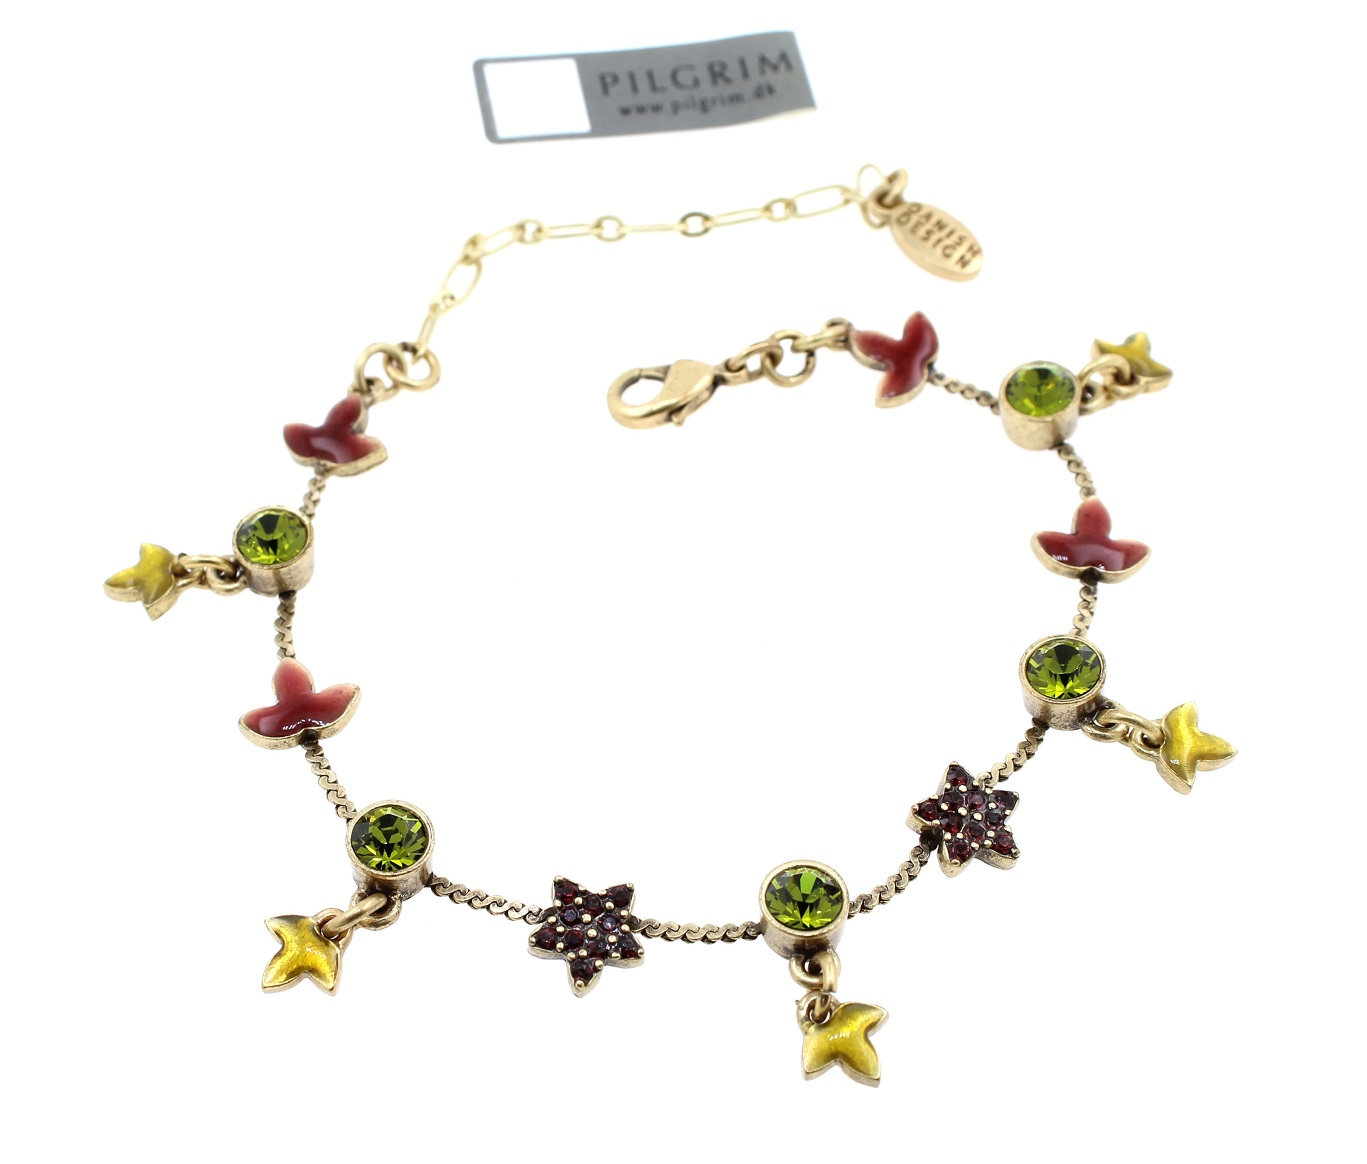 PILGRIM - Circle Line - Simple Star & Leaf Bracelet - Gold/Burgundy/Green BNWT